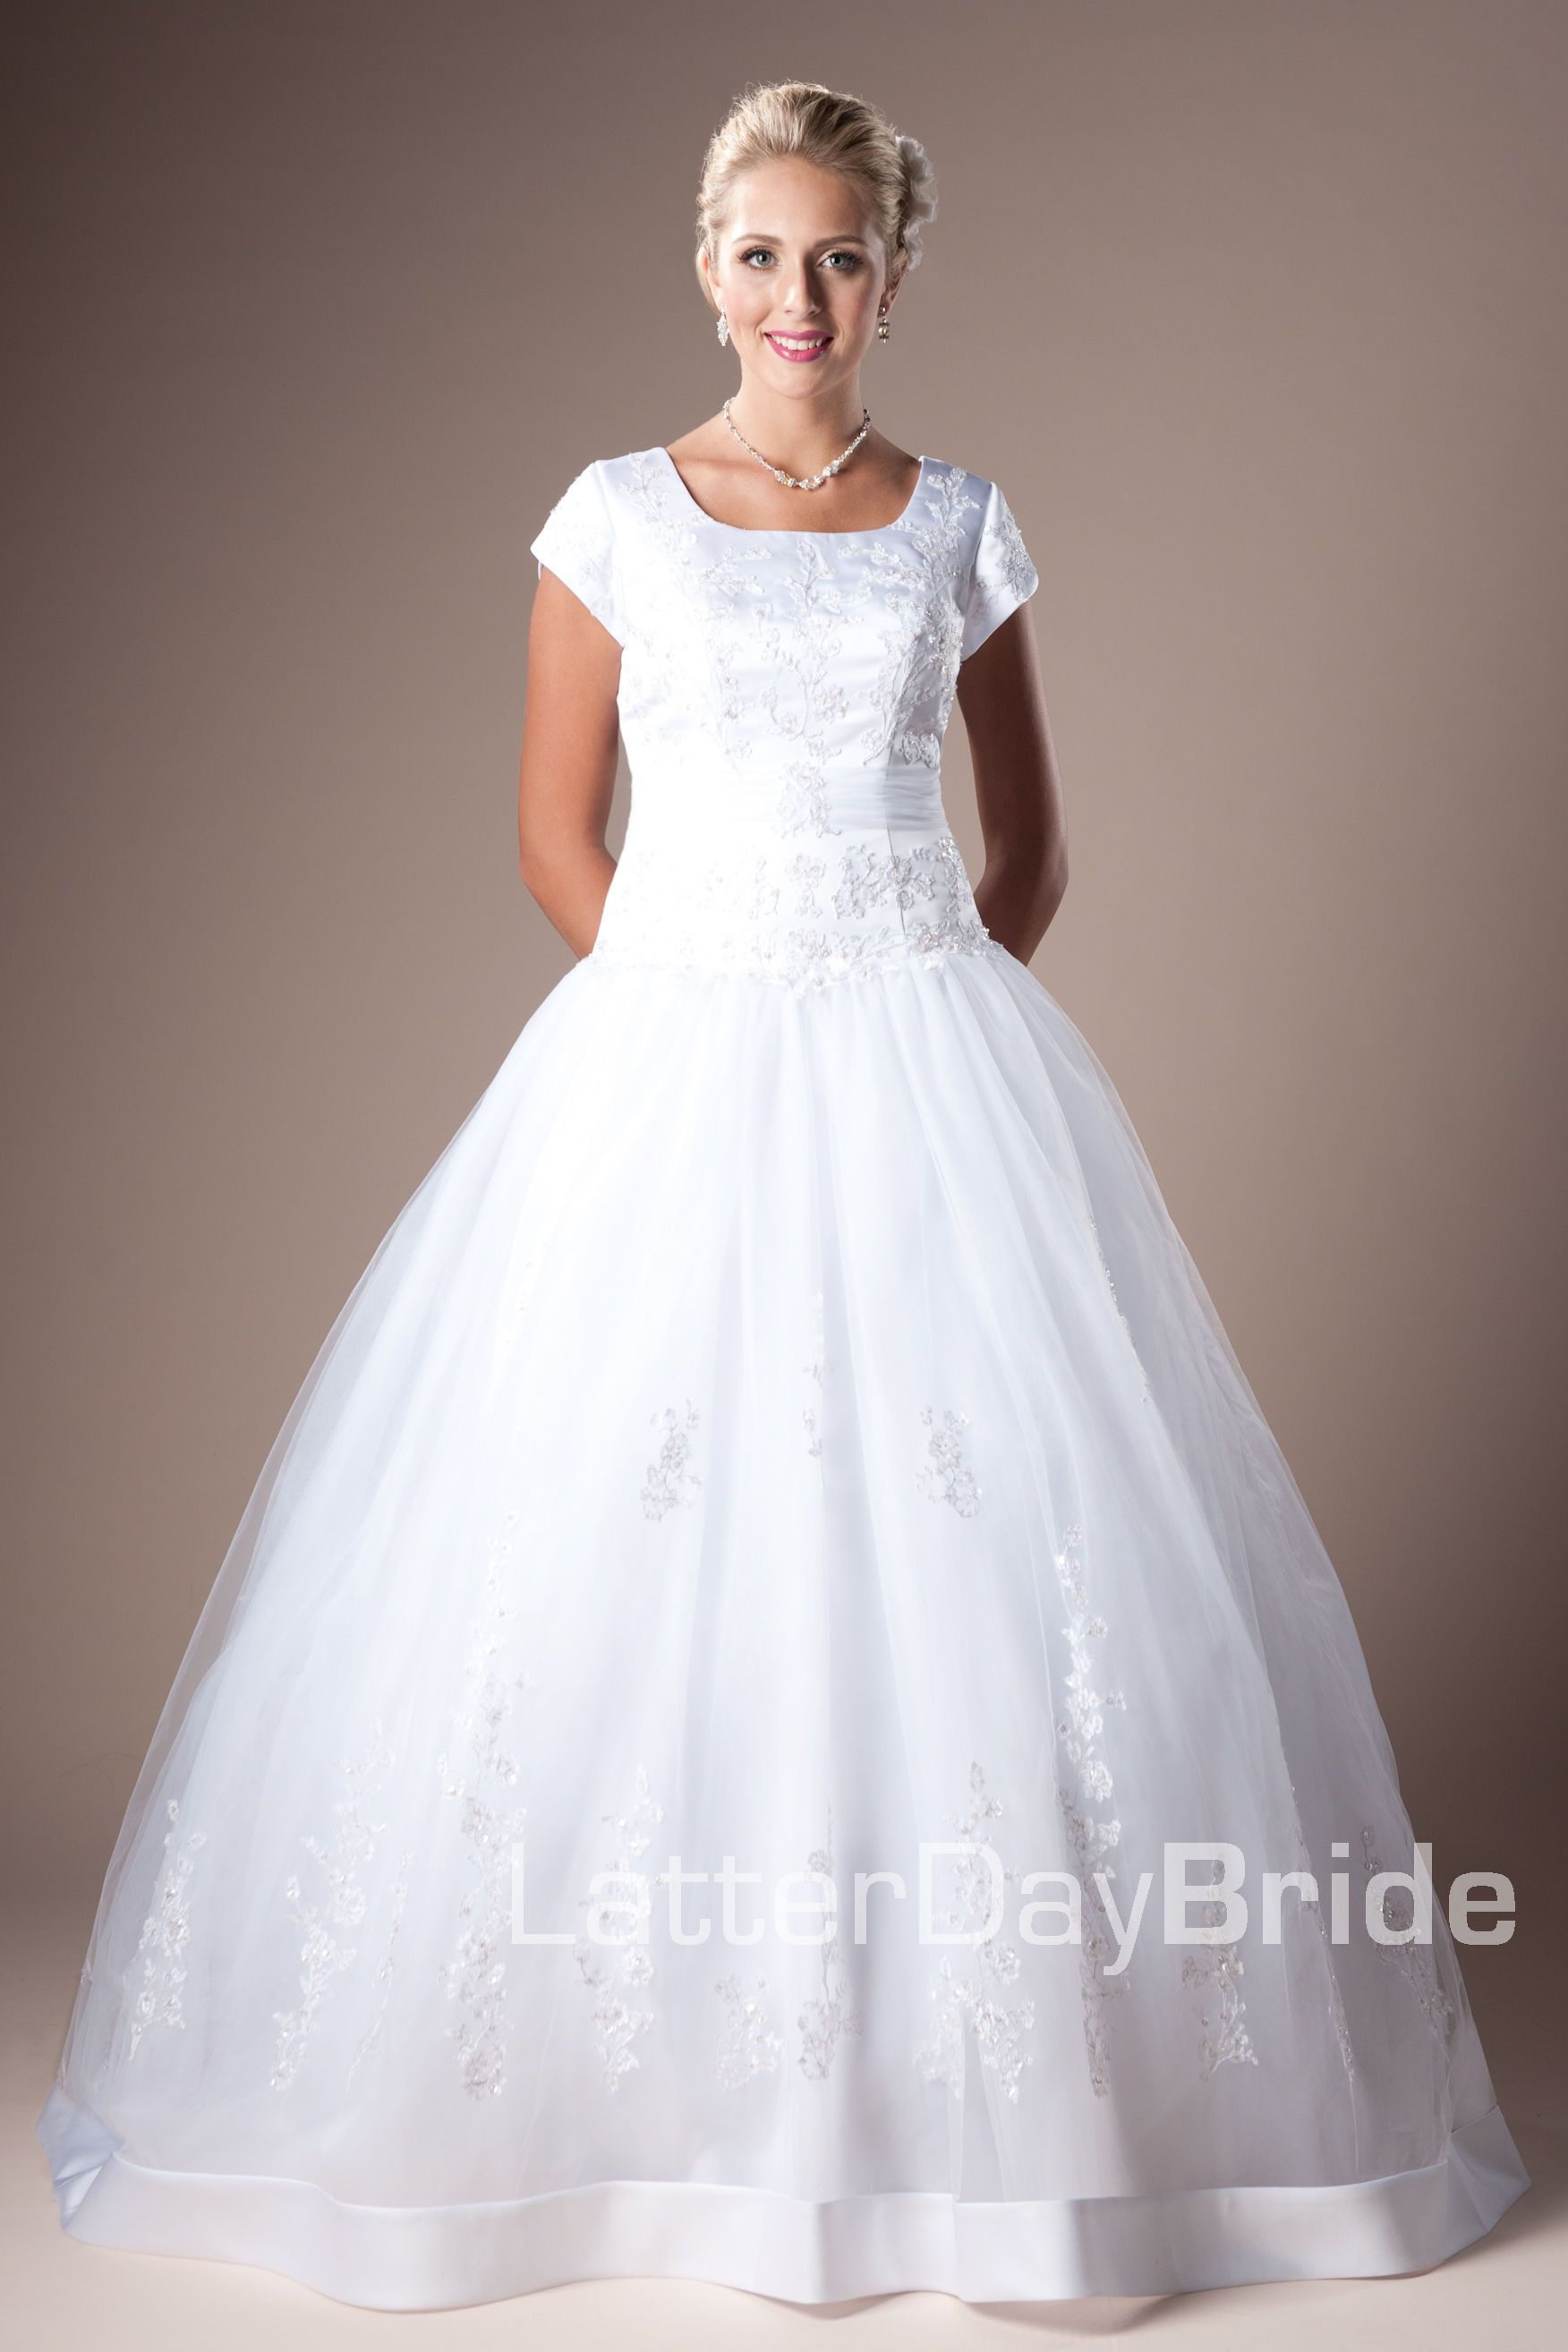 Mormon Modest Wedding Dresses Of Modest Wedding Dress New Haven Latterdaybride Prom